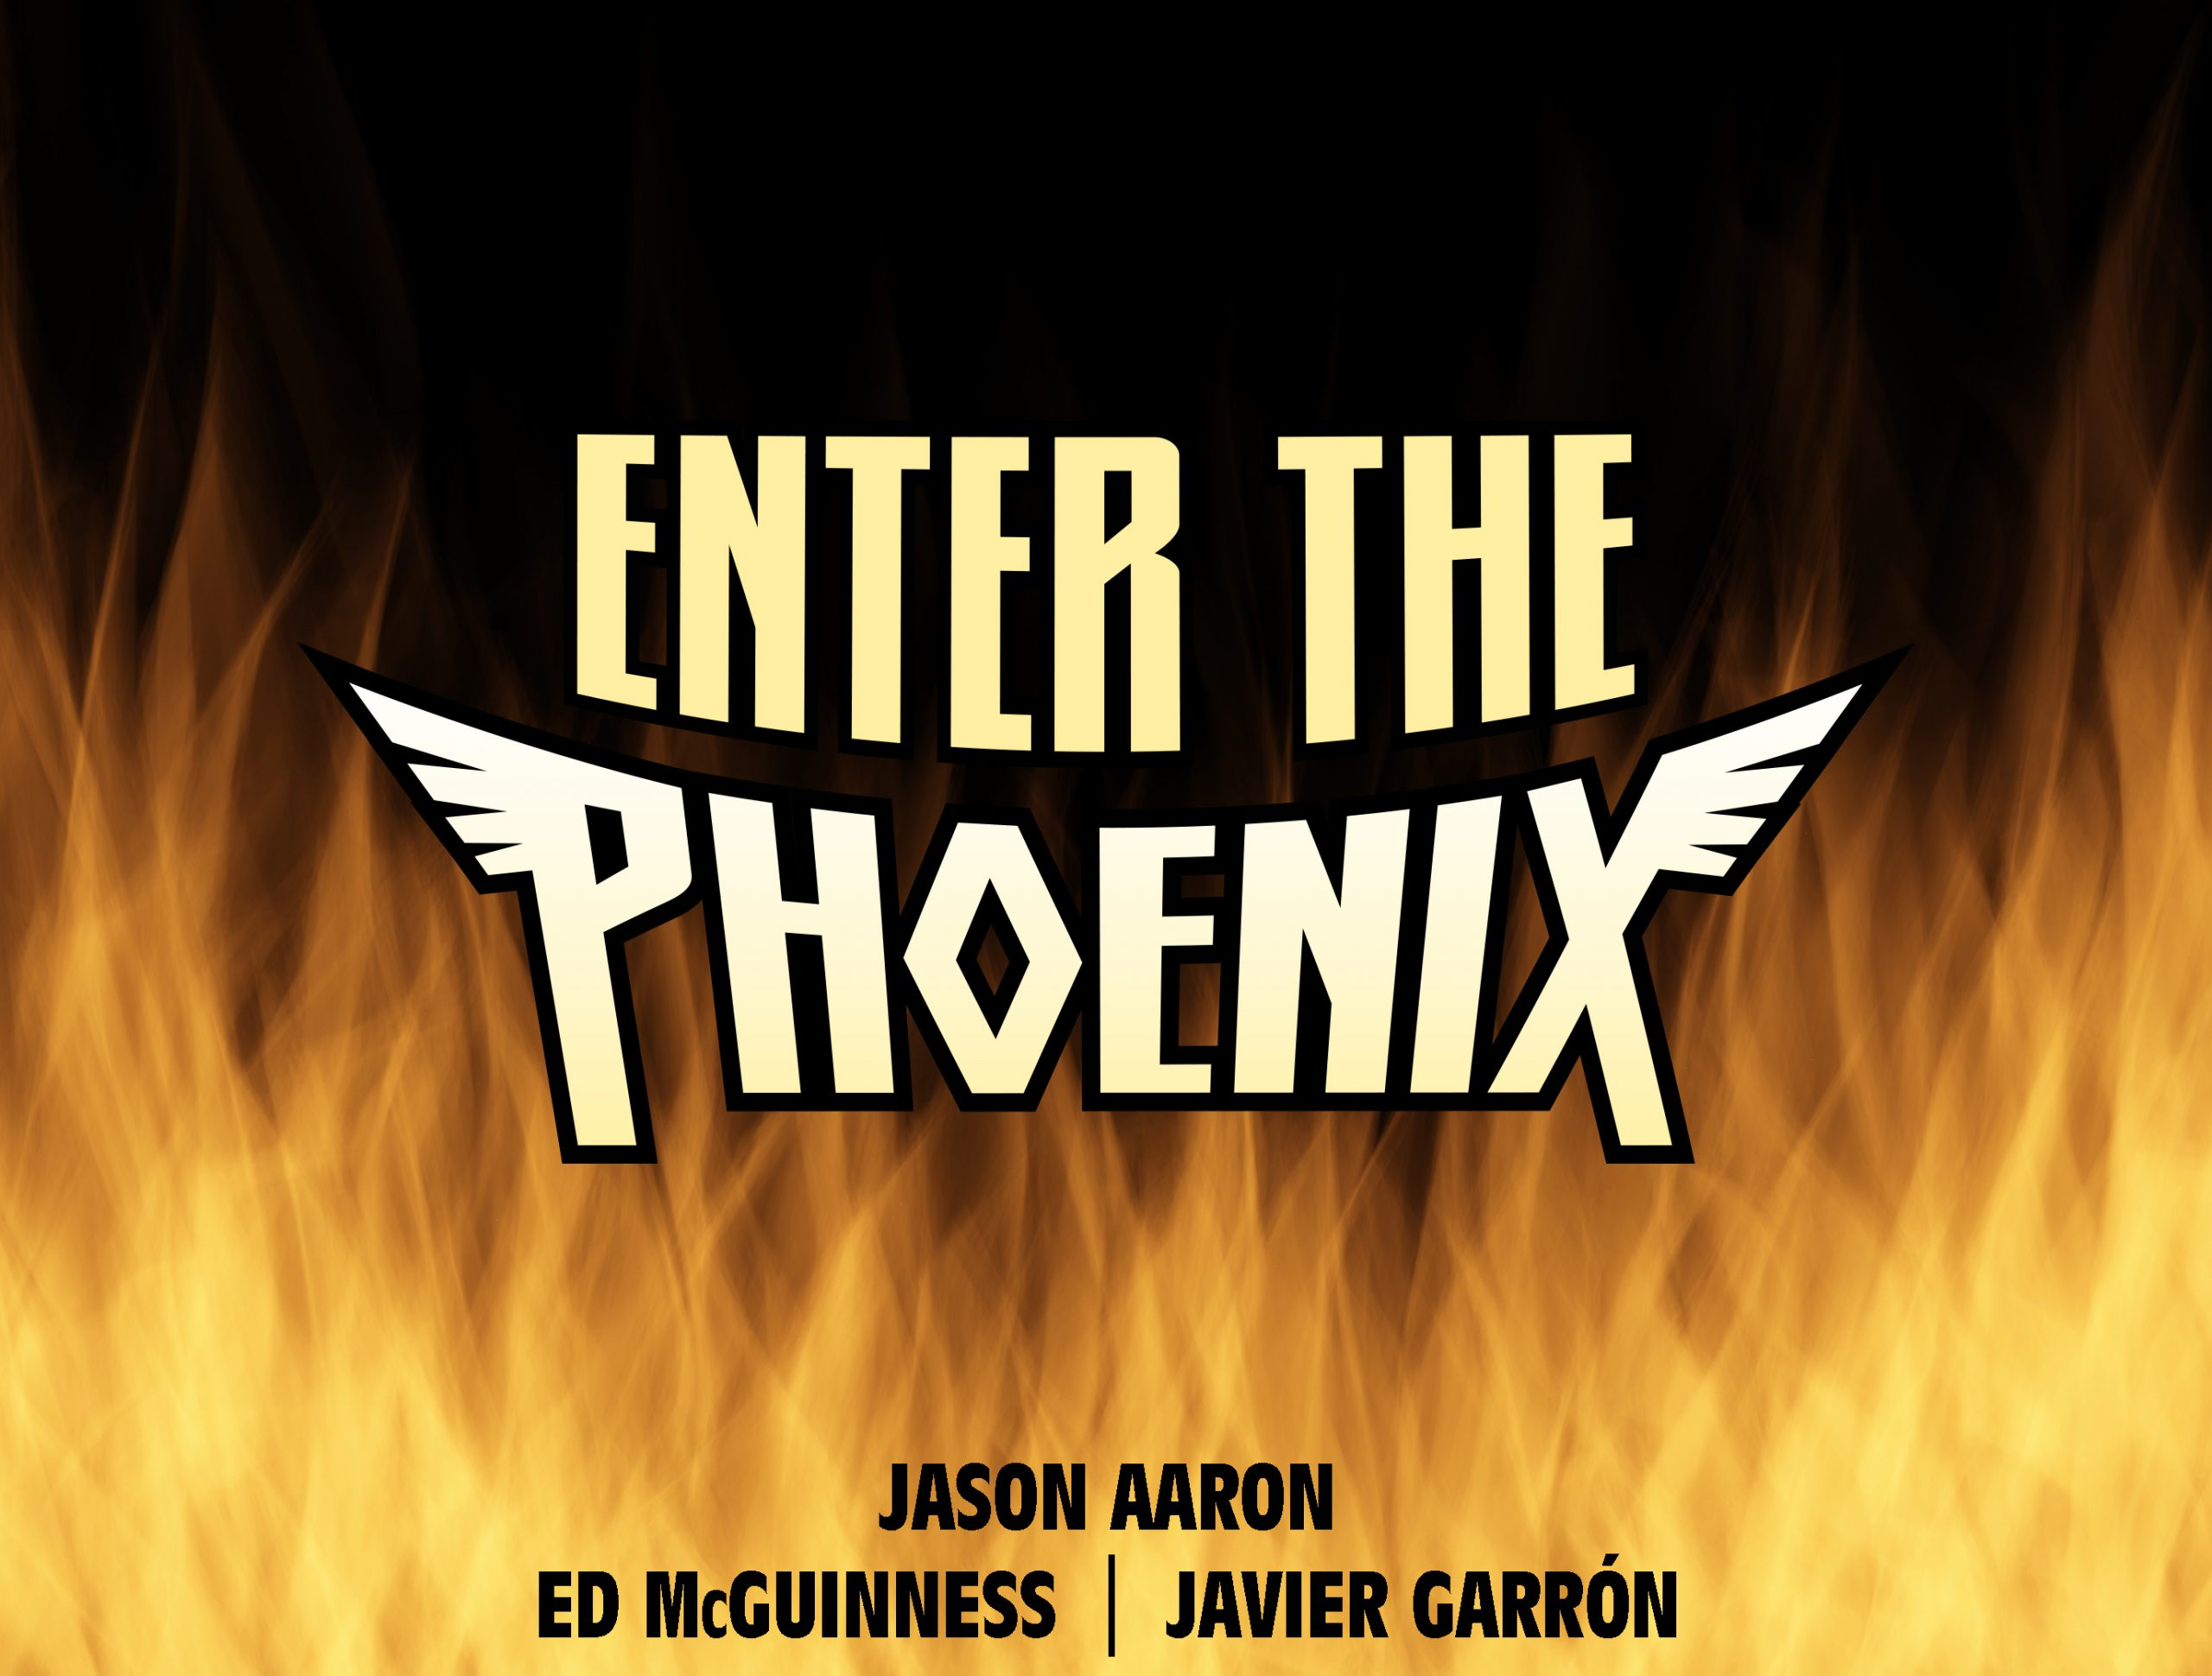 'Enter the Phoenix' is the follow-up story to the Moon Knight story arc currently taking place in Avengers.